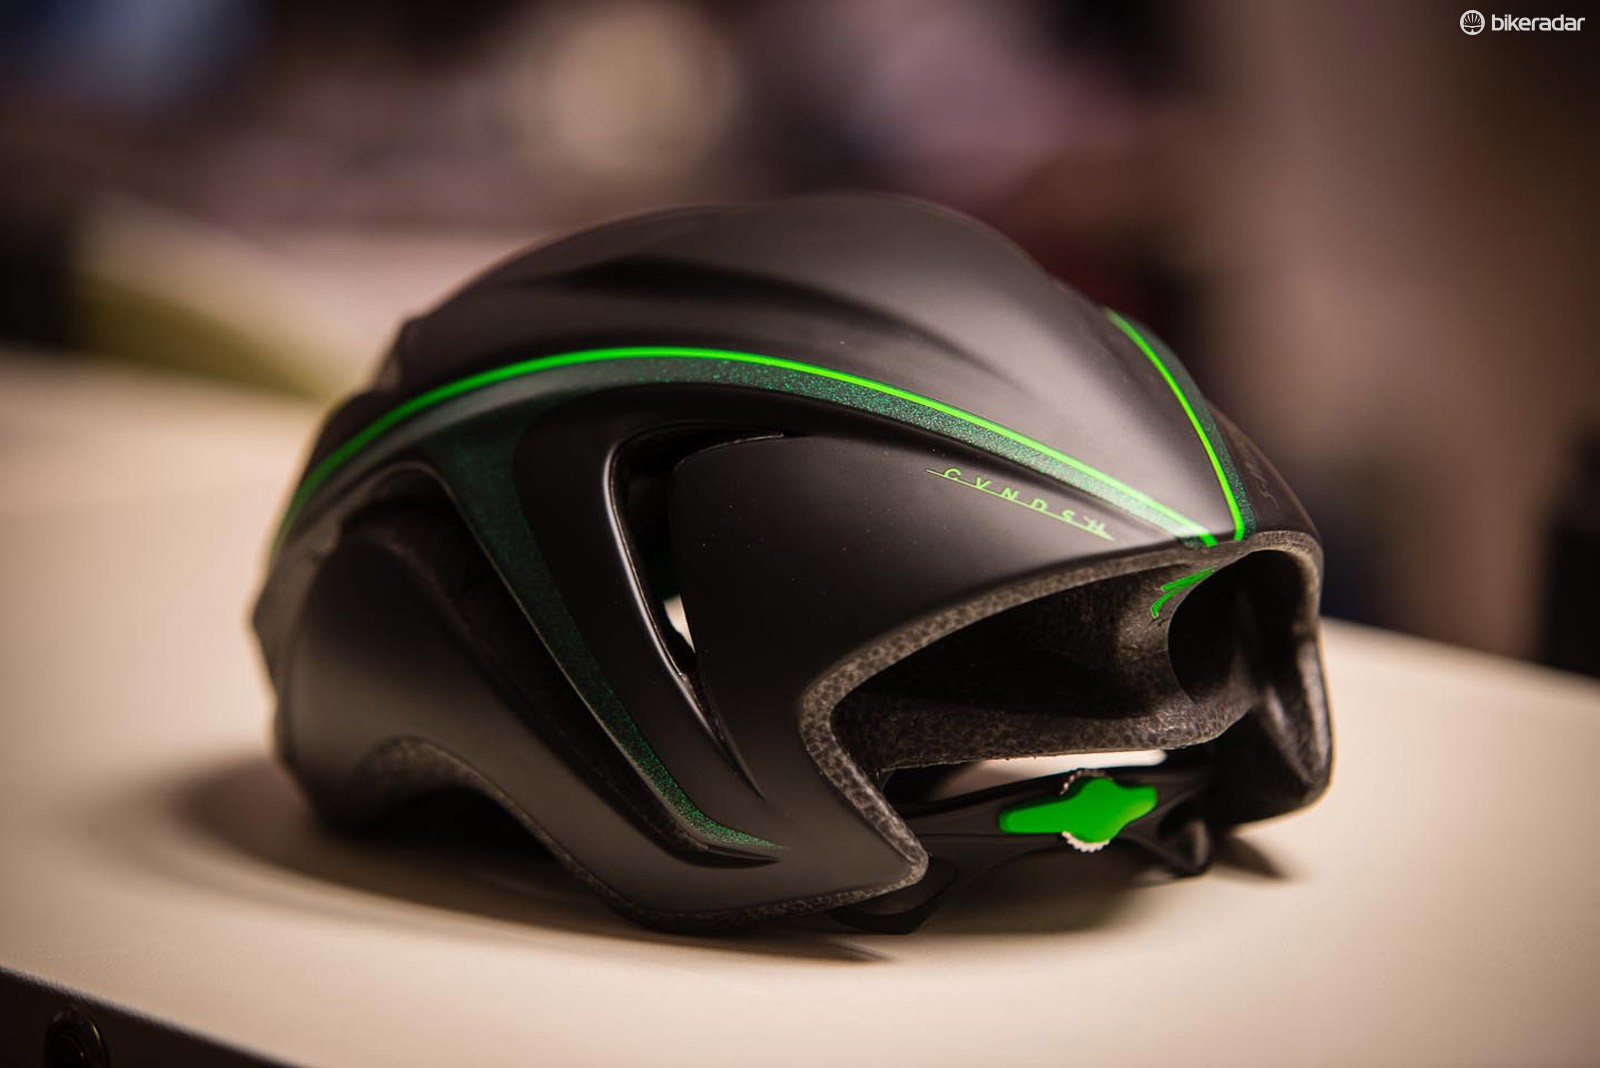 The CVNDSH Evade is based on the aero-optimized S-Works Evade helmet